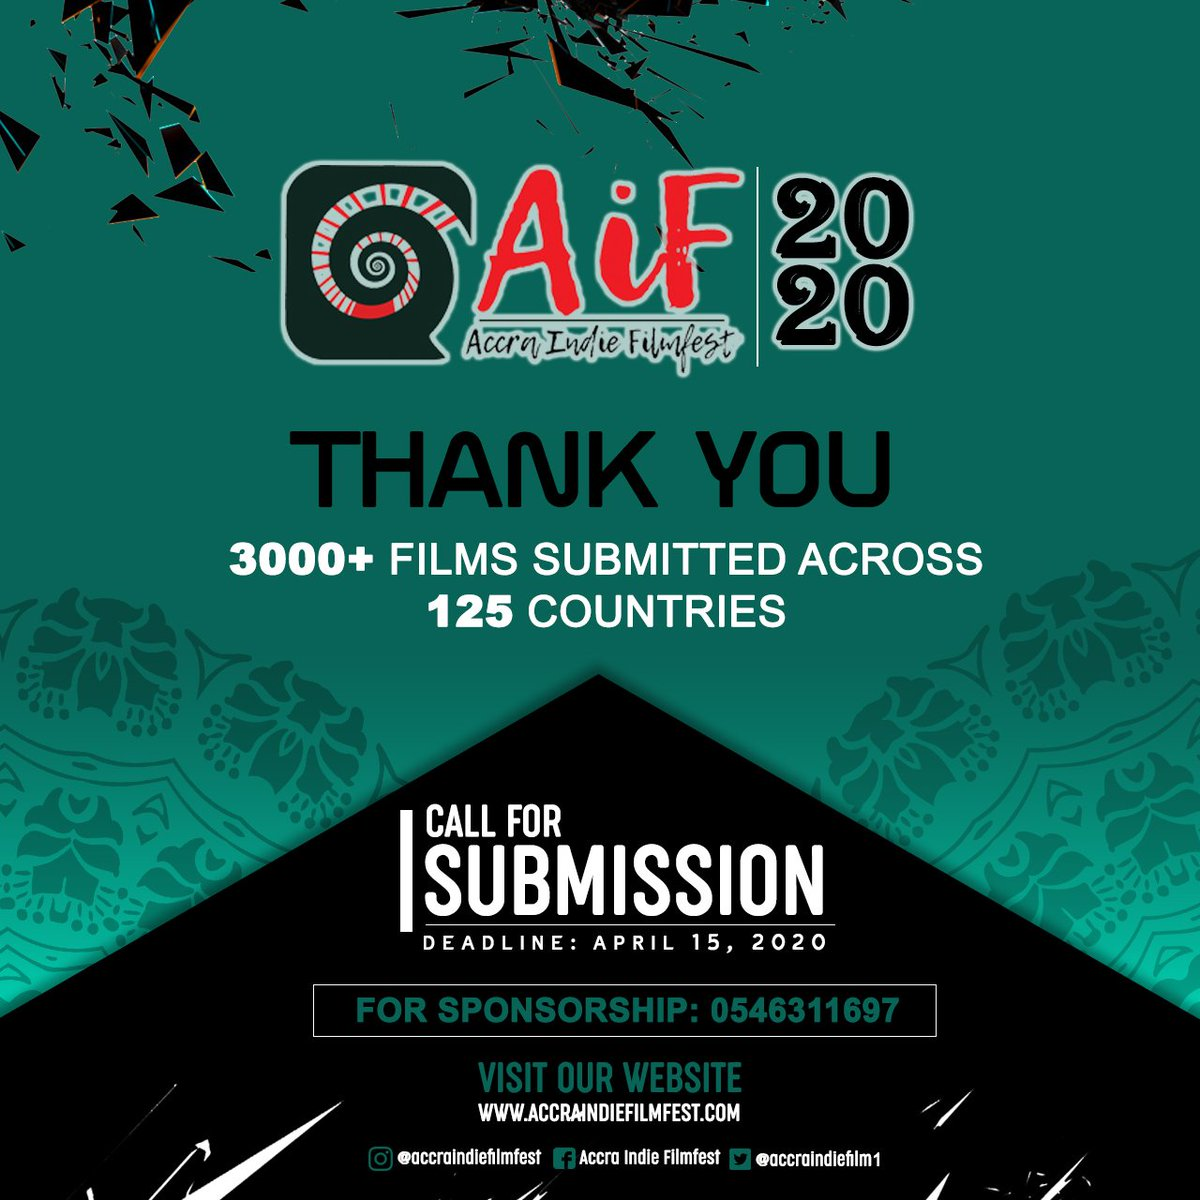 We want to warmly appreciate you for being part of our submission engagement. 3000+ across 125 countries in 30 days is a hot run. Let's keep them coming through and we will have a different short film experience at this year's edition of the festival. #AiF2020 #indie  #festivalpic.twitter.com/pZc3kDBCCU